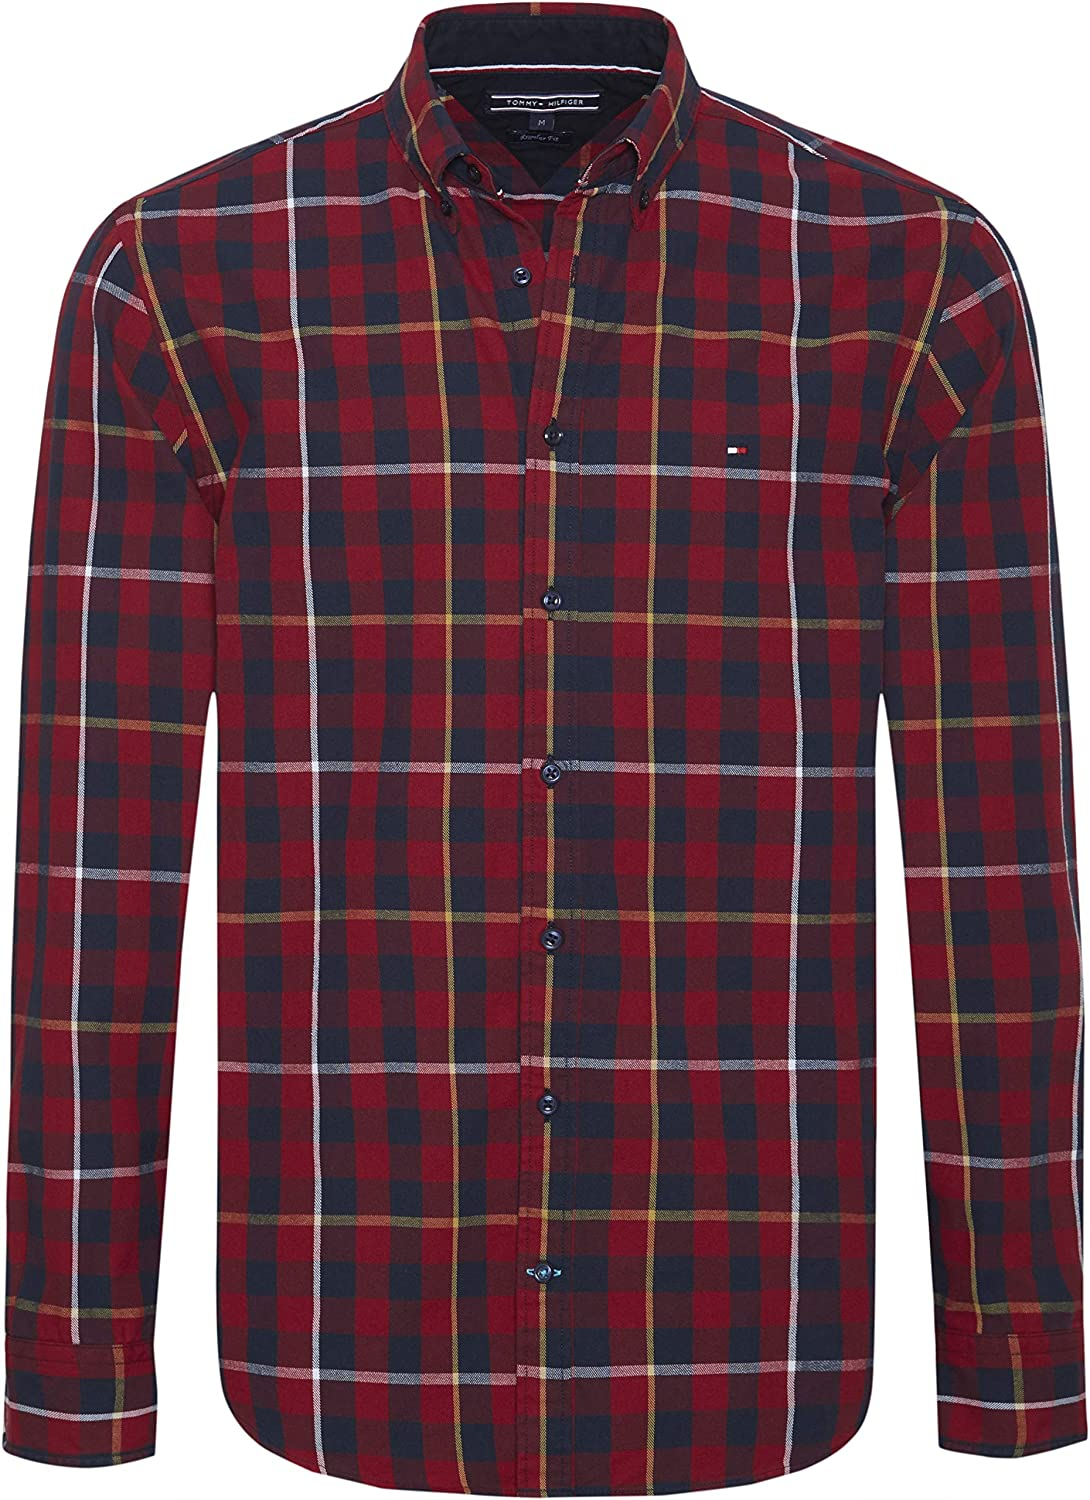 Tommy Hilfiger Men's Gingham with A Twist Shirt, Red